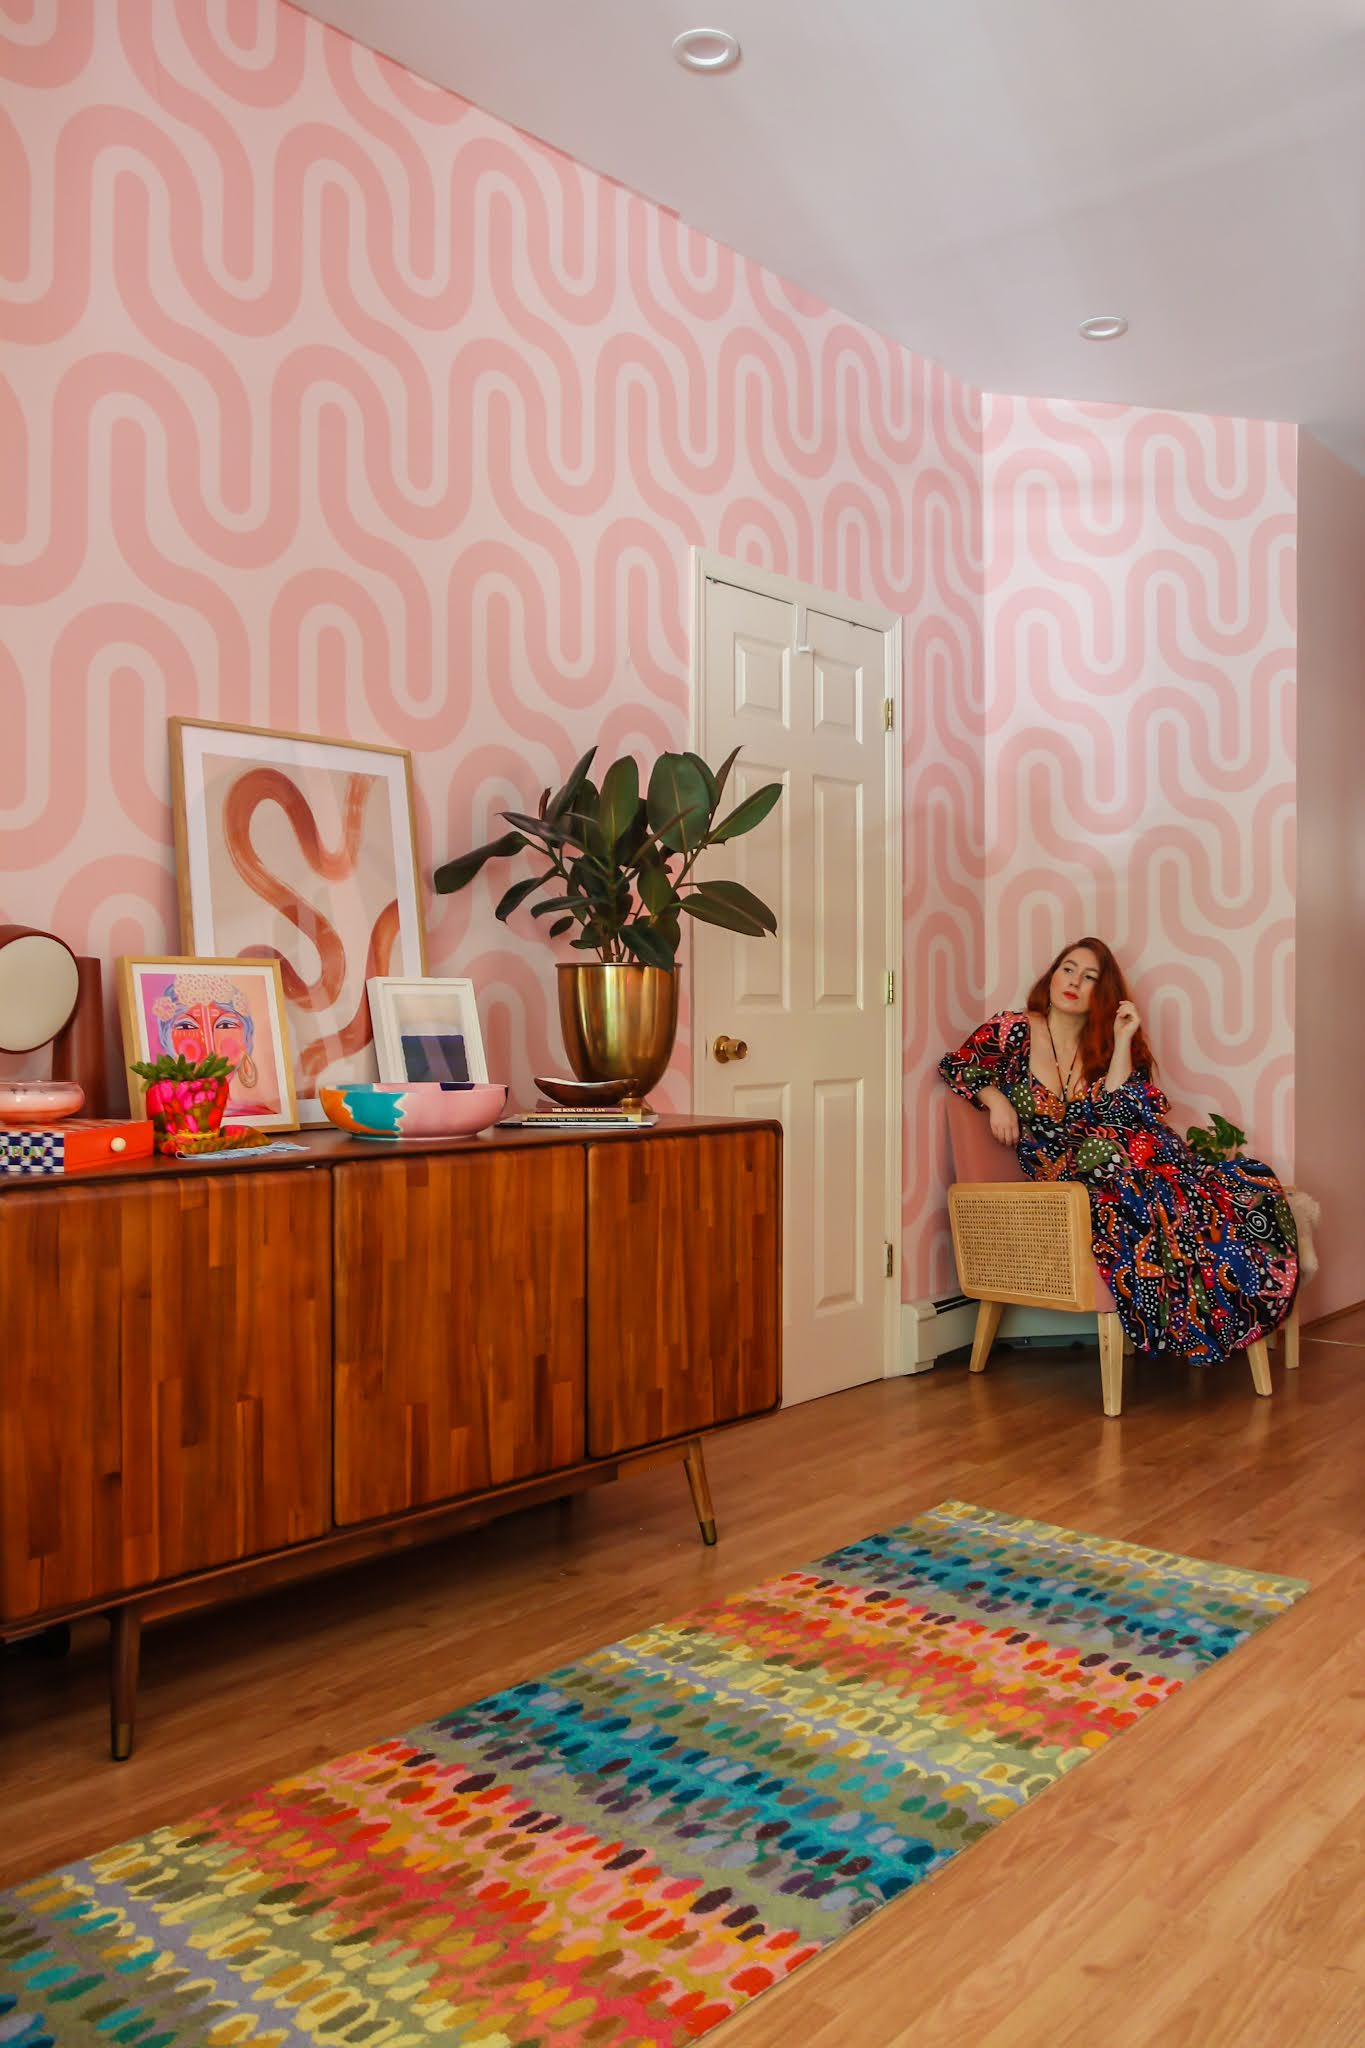 wallpaper ideas // colorful homes // maximalist home decor // pink home decor // retro home decor // retro wallpaper ideas // entryway decor // entryway ideas // small space decor ideas // maximalist homes // farm rio dress // pink velvet chair // sideboards // pink on pink decor